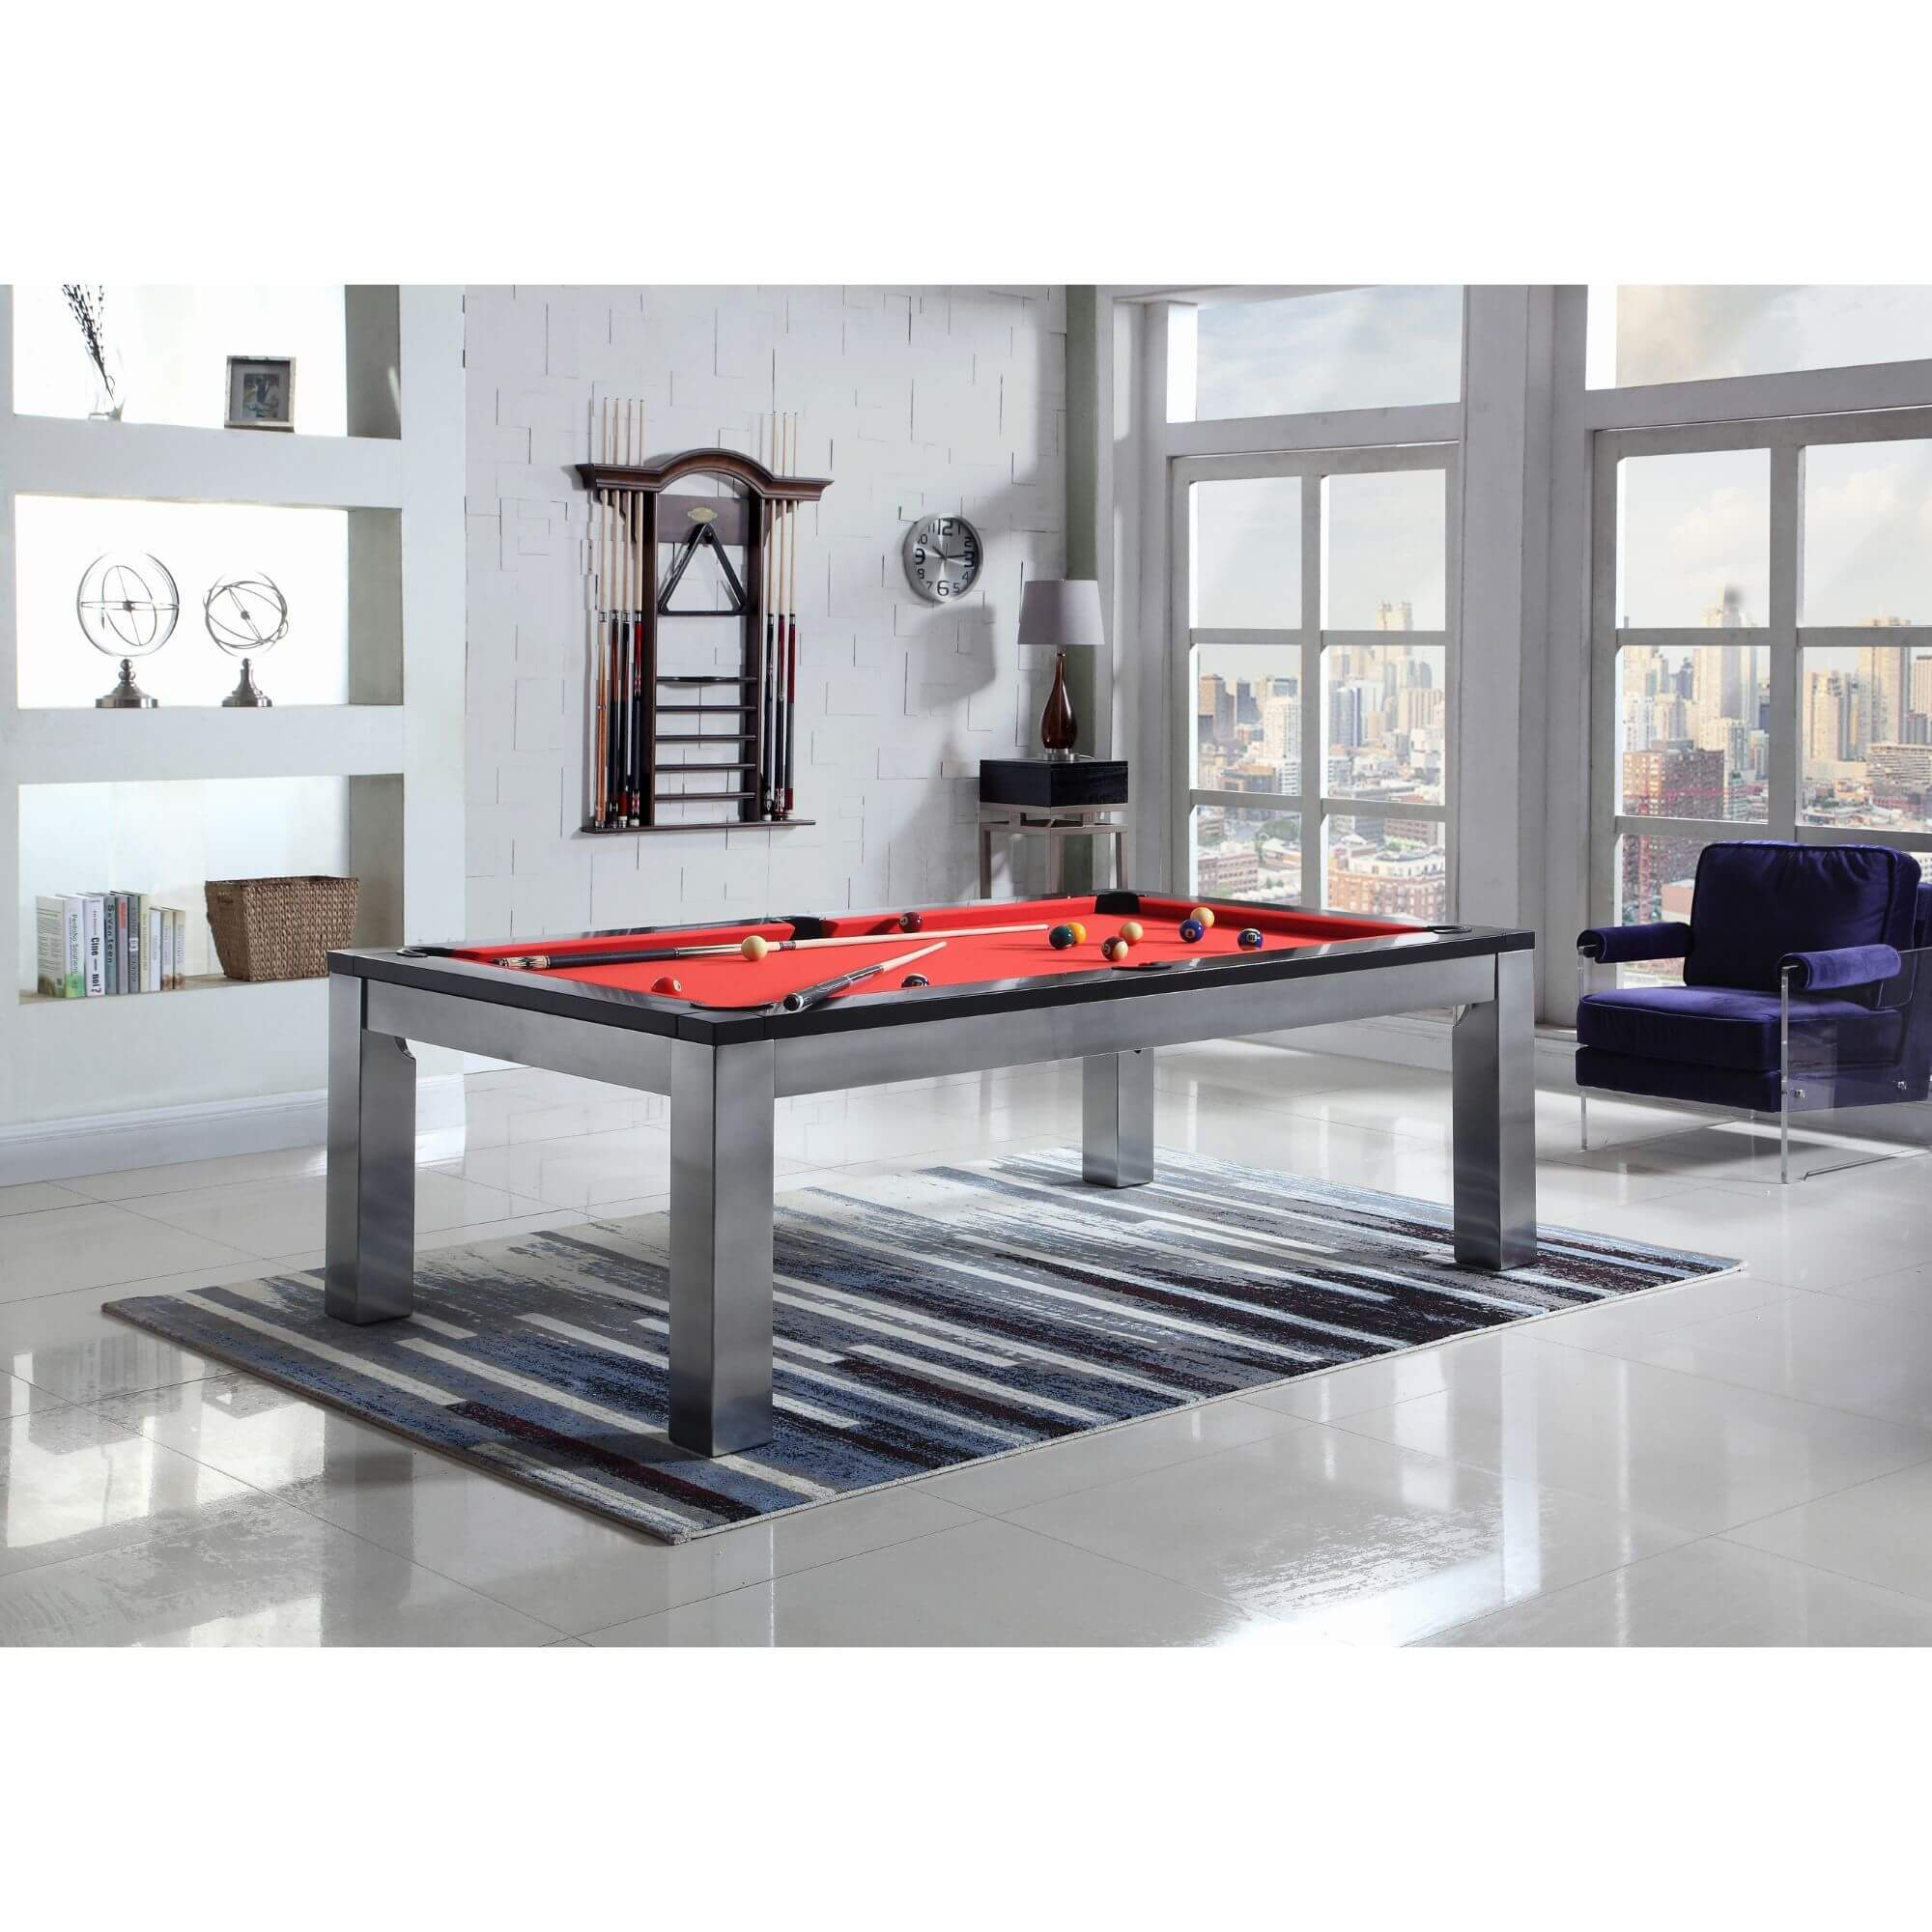 Playcraft Monaco Slate Pool Table with Dining Top - Gaming Blaze